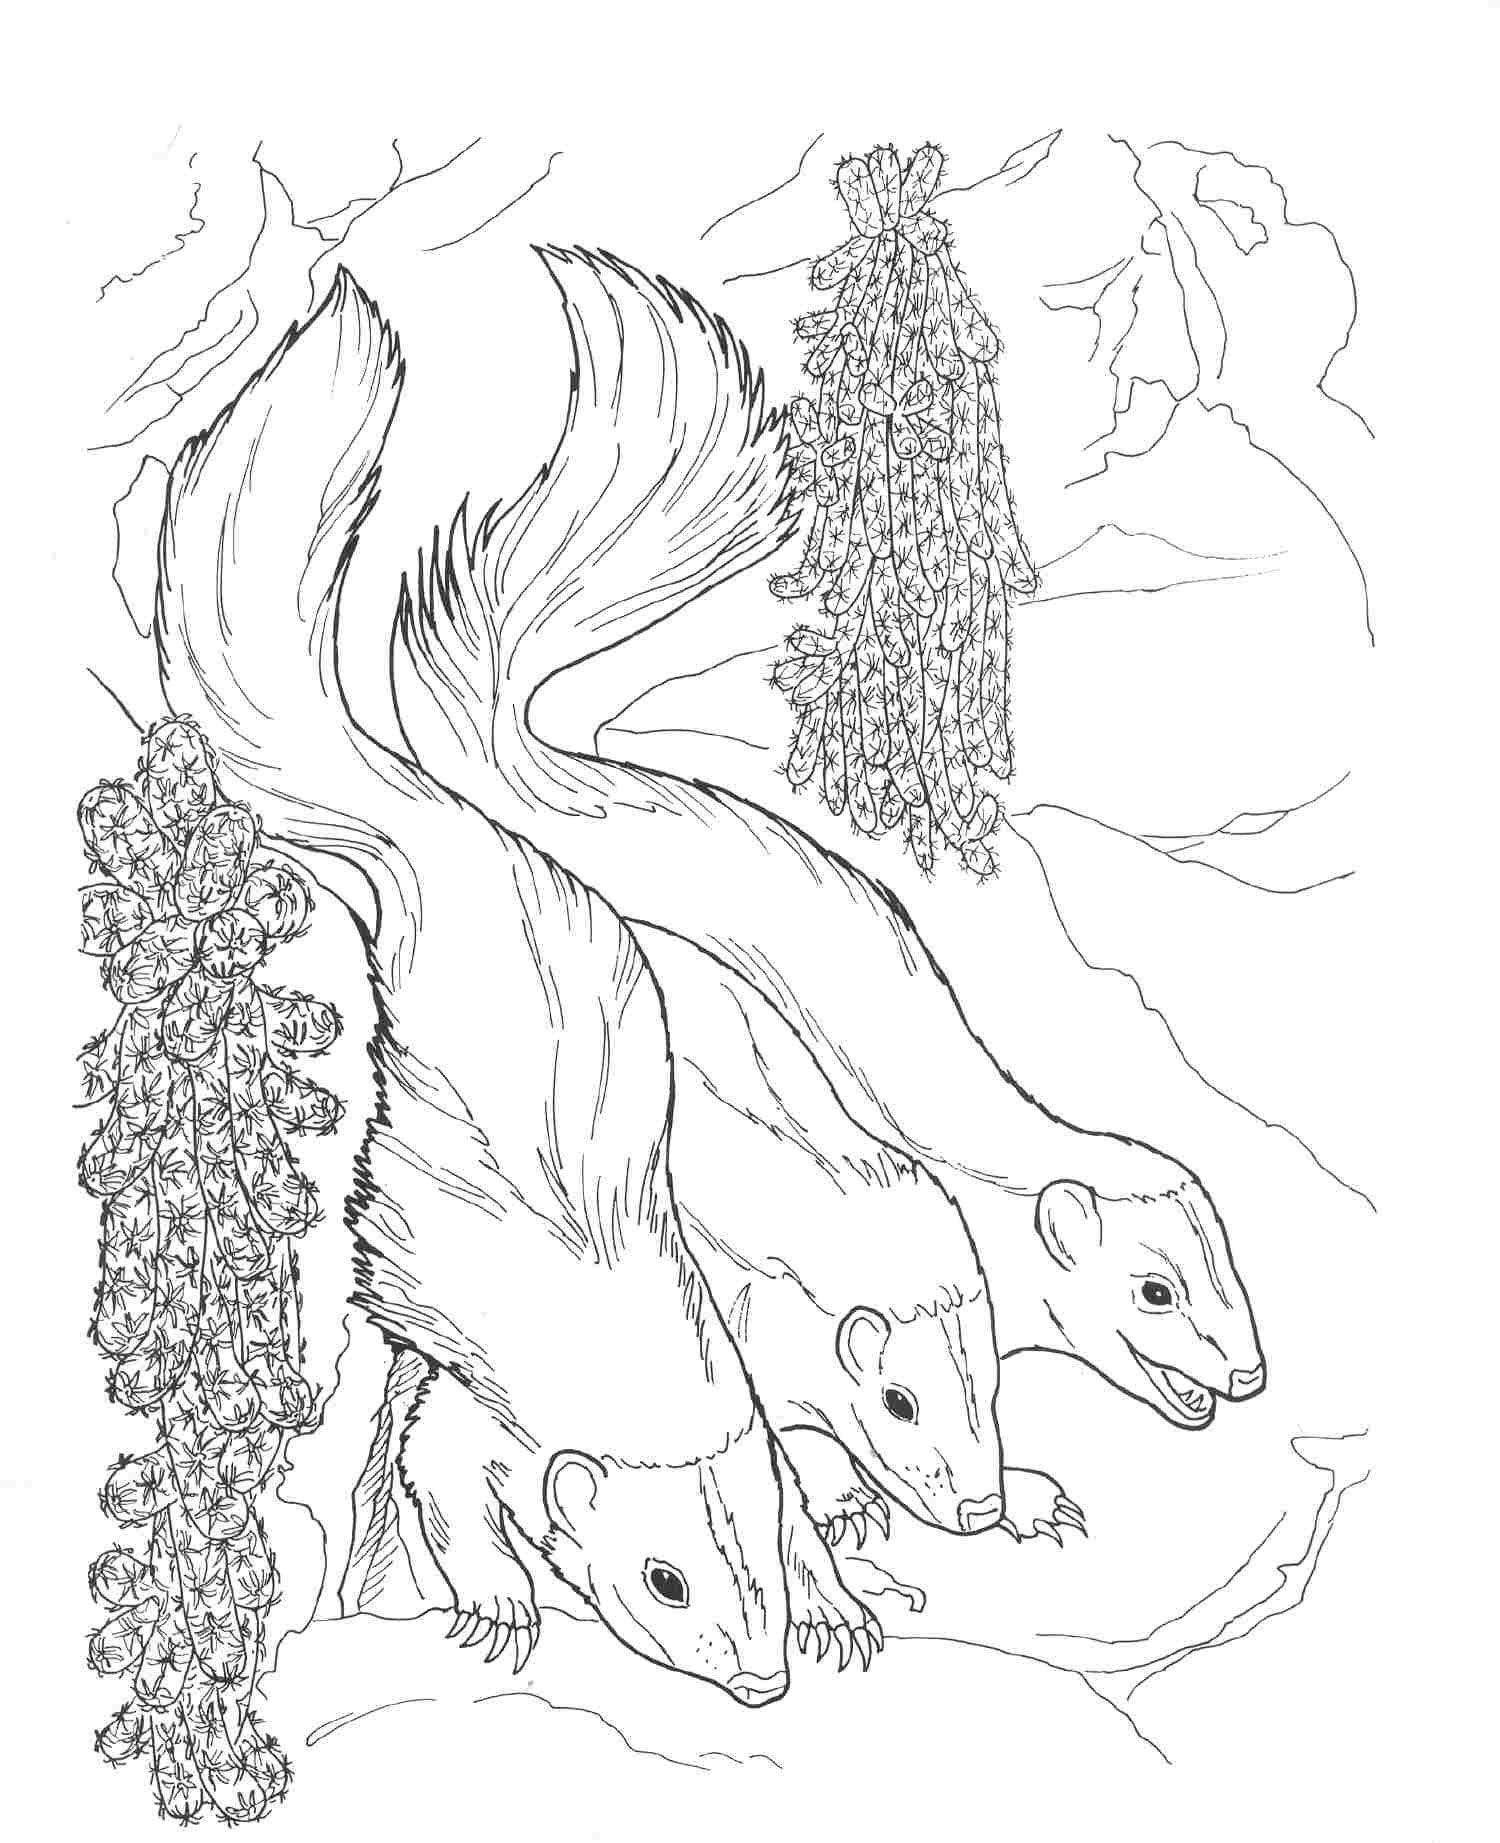 nocturnal animals colouring top 10 porcupine coloring pages for toddlers nocturnal colouring nocturnal animals